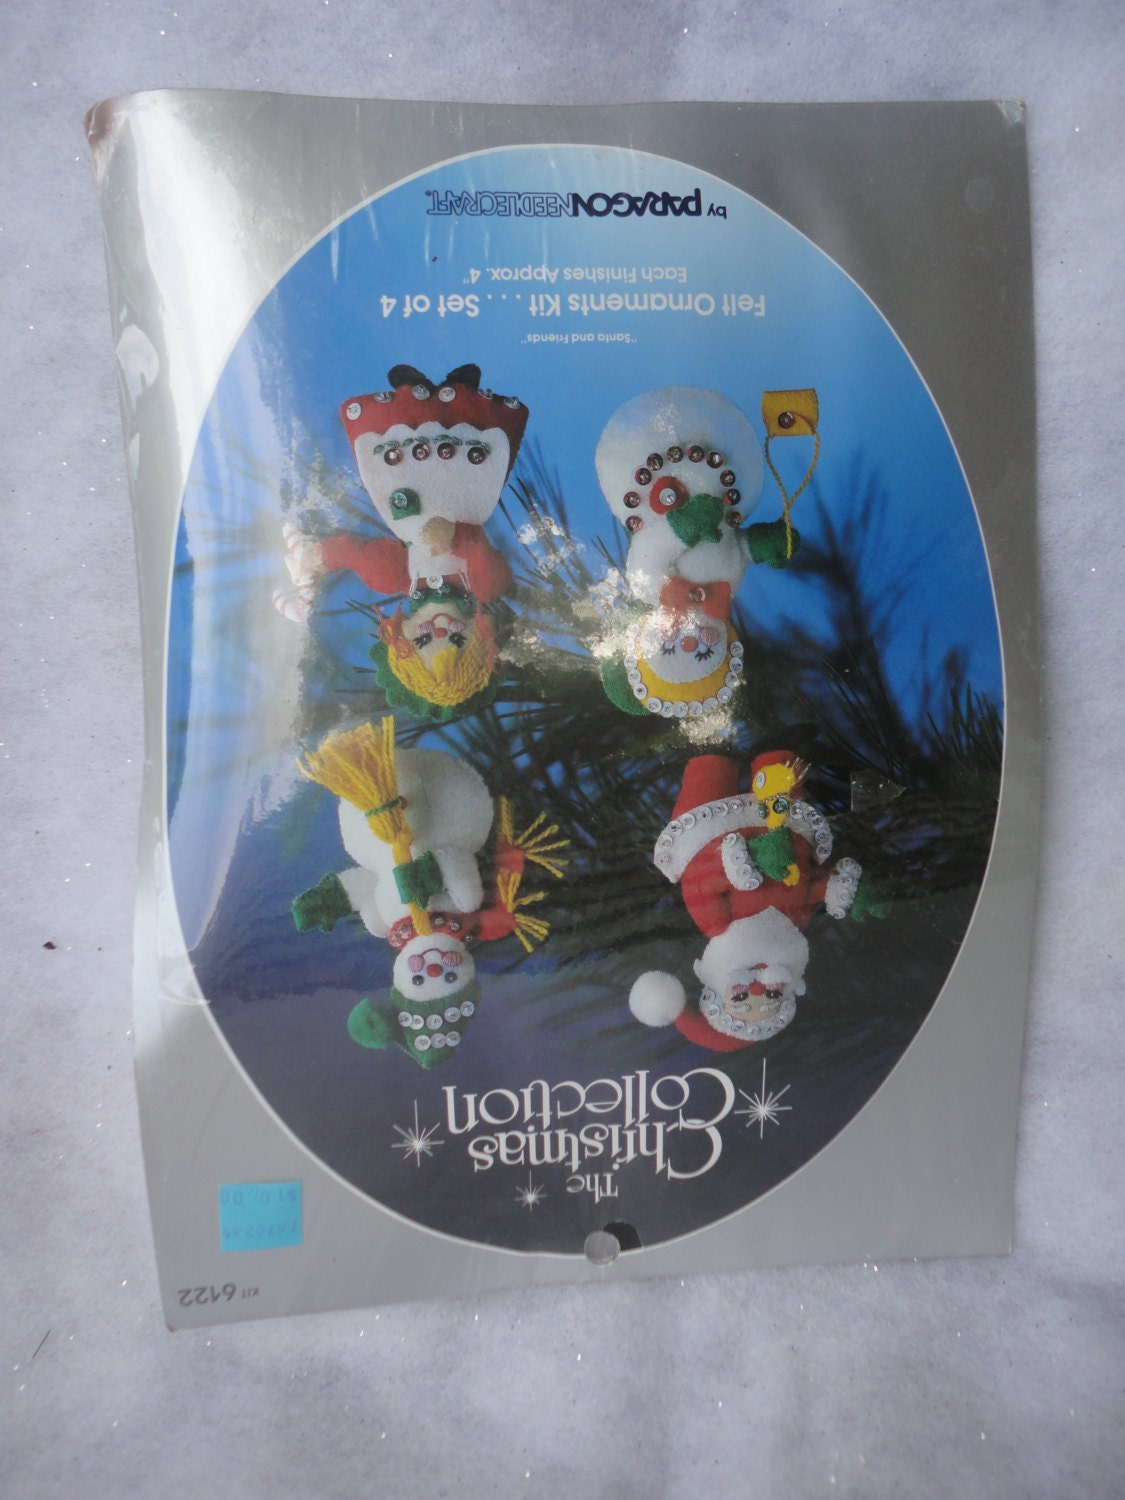 Mr and mrs claus ornaments -  Mr And Mrs Snowman Ornaments Sold By Bonneyhillshop